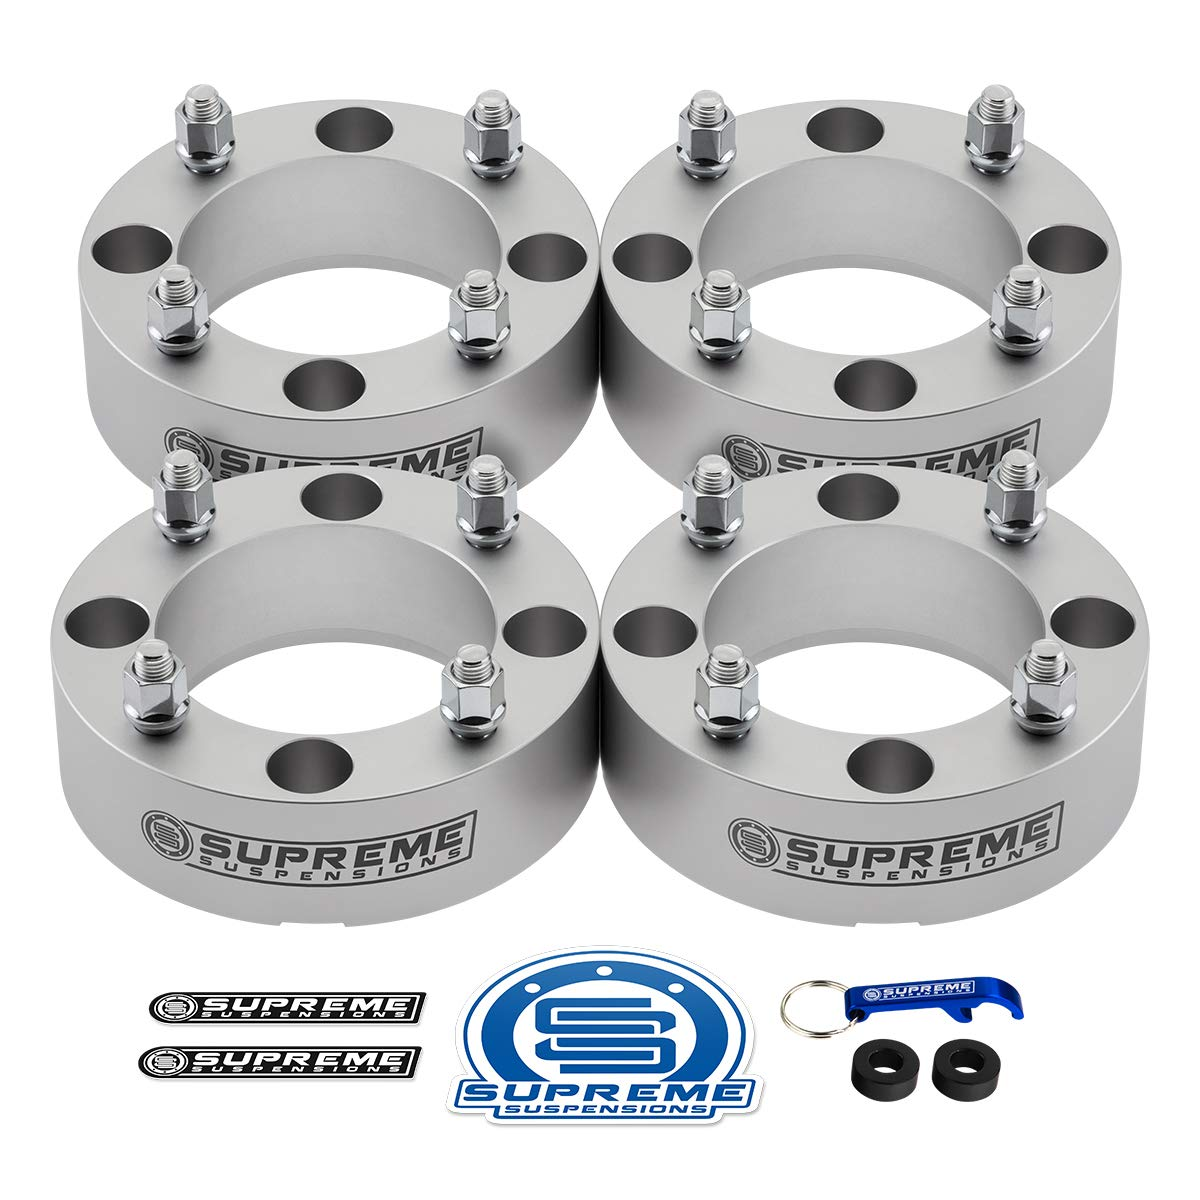 """Supreme Suspensions - 4pc Set of 1.5"""" Wheel Spacers for CAN-AM Outlander 400 + 500 + 650 + 800 